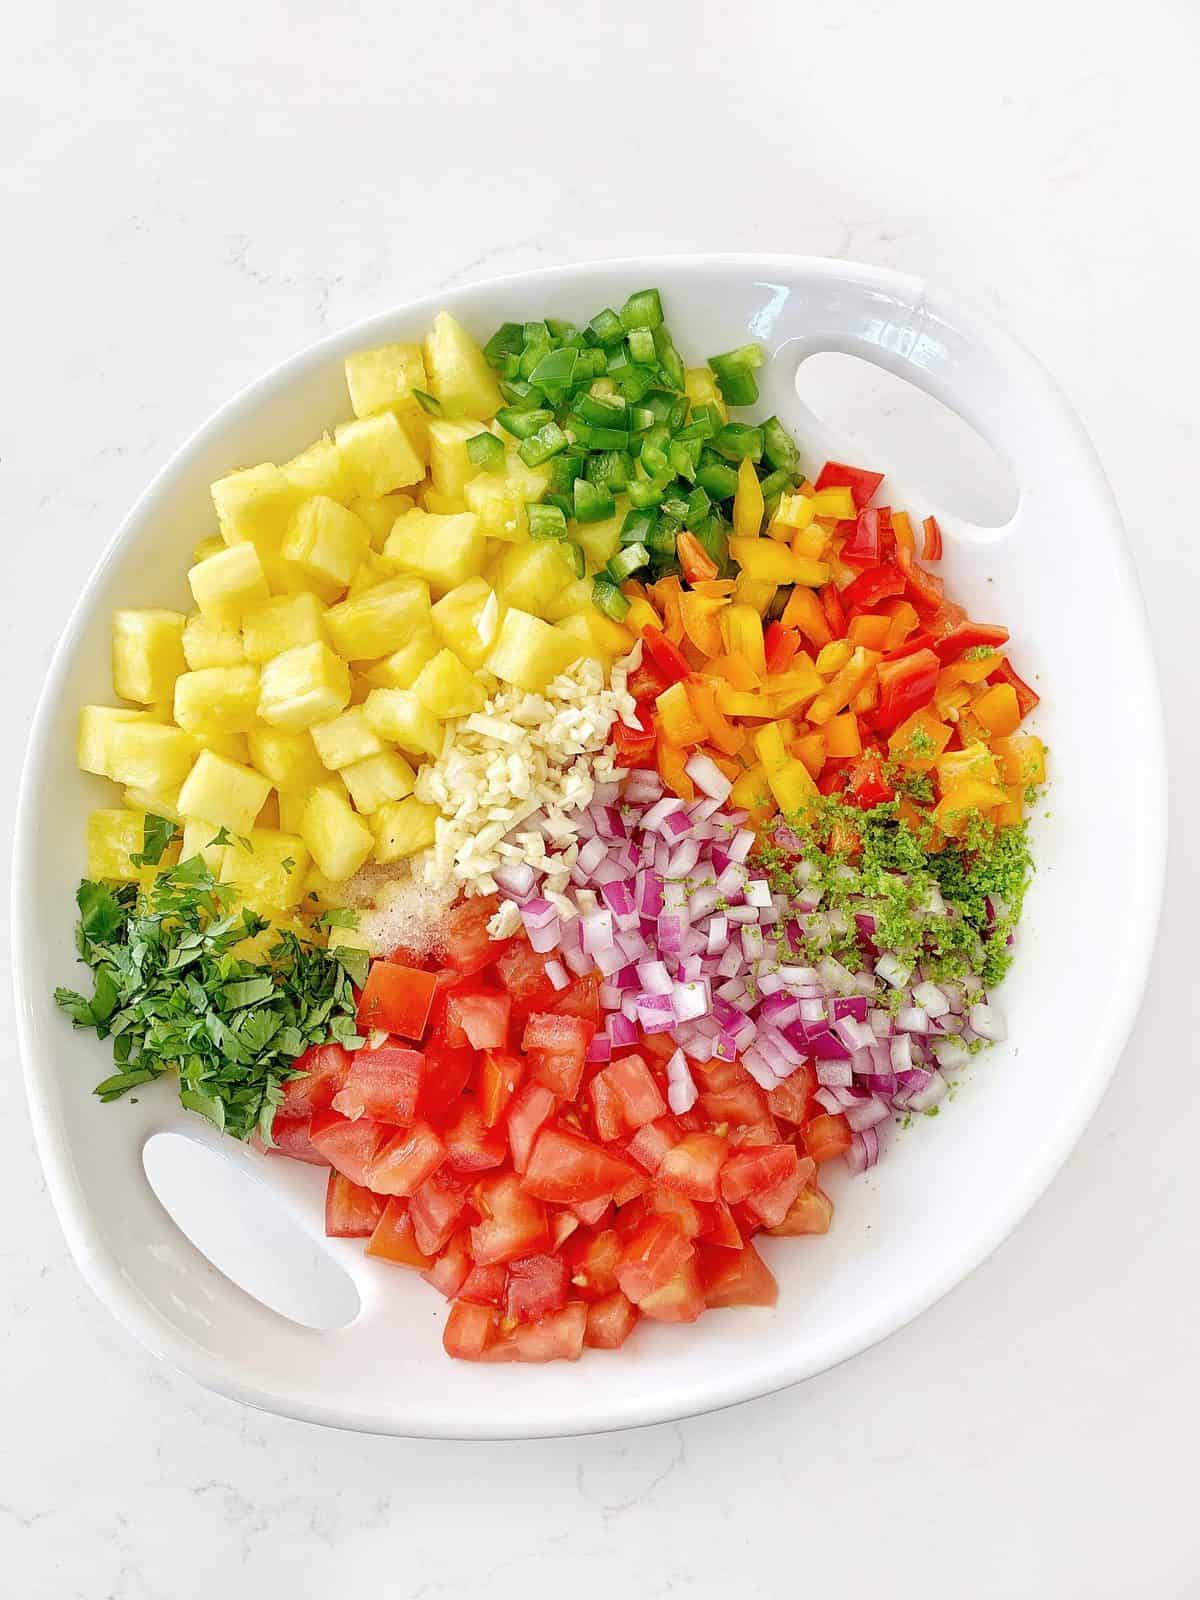 Overhead shots of fresh fruits and vegetables for Pineapple Salsa in a white bowl